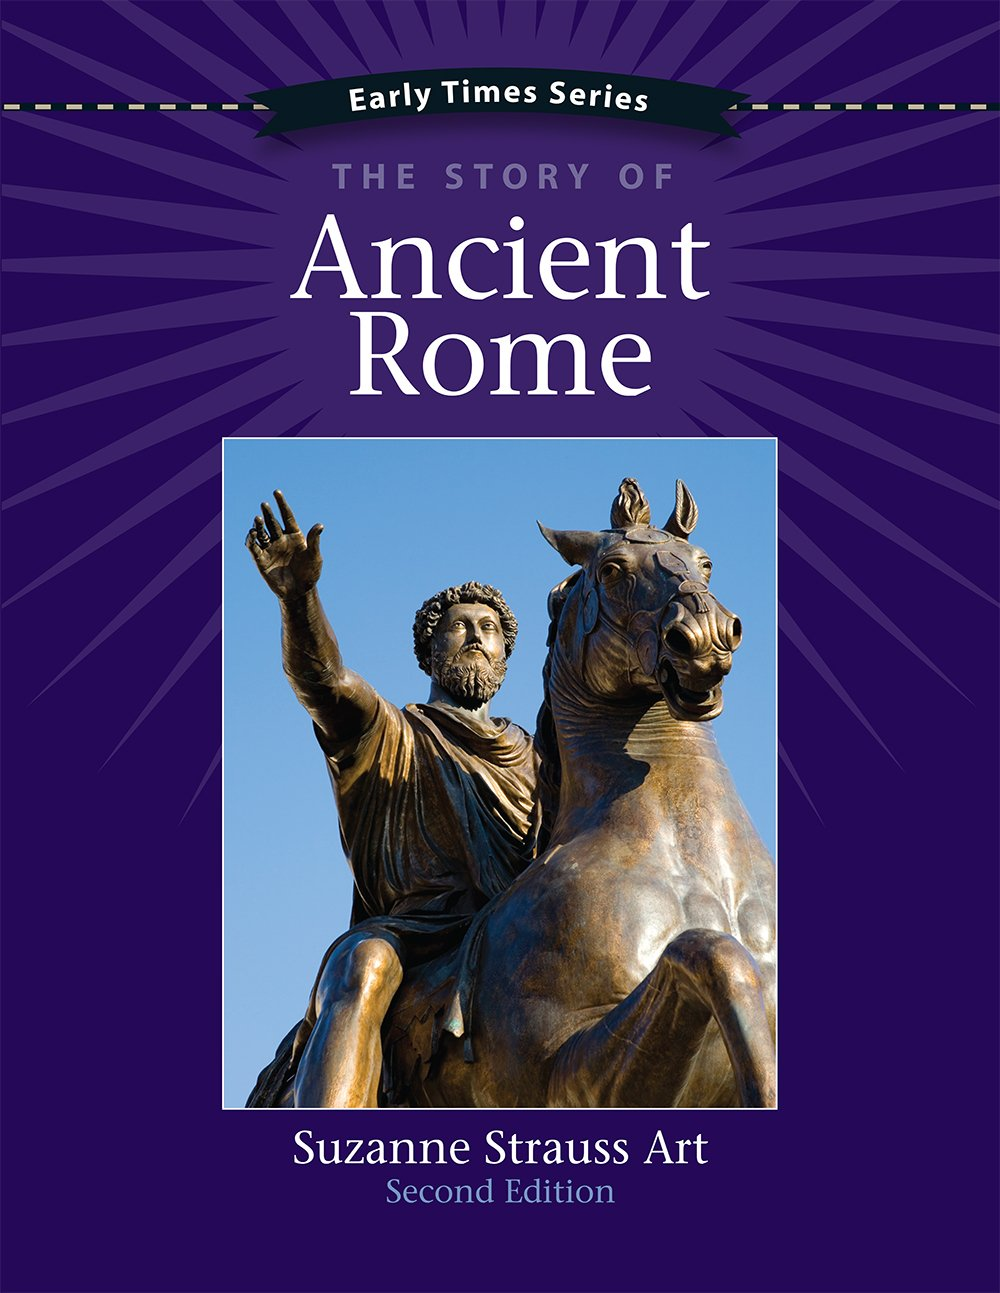 Early Times: The Story of Ancient Rome 2nd Edition